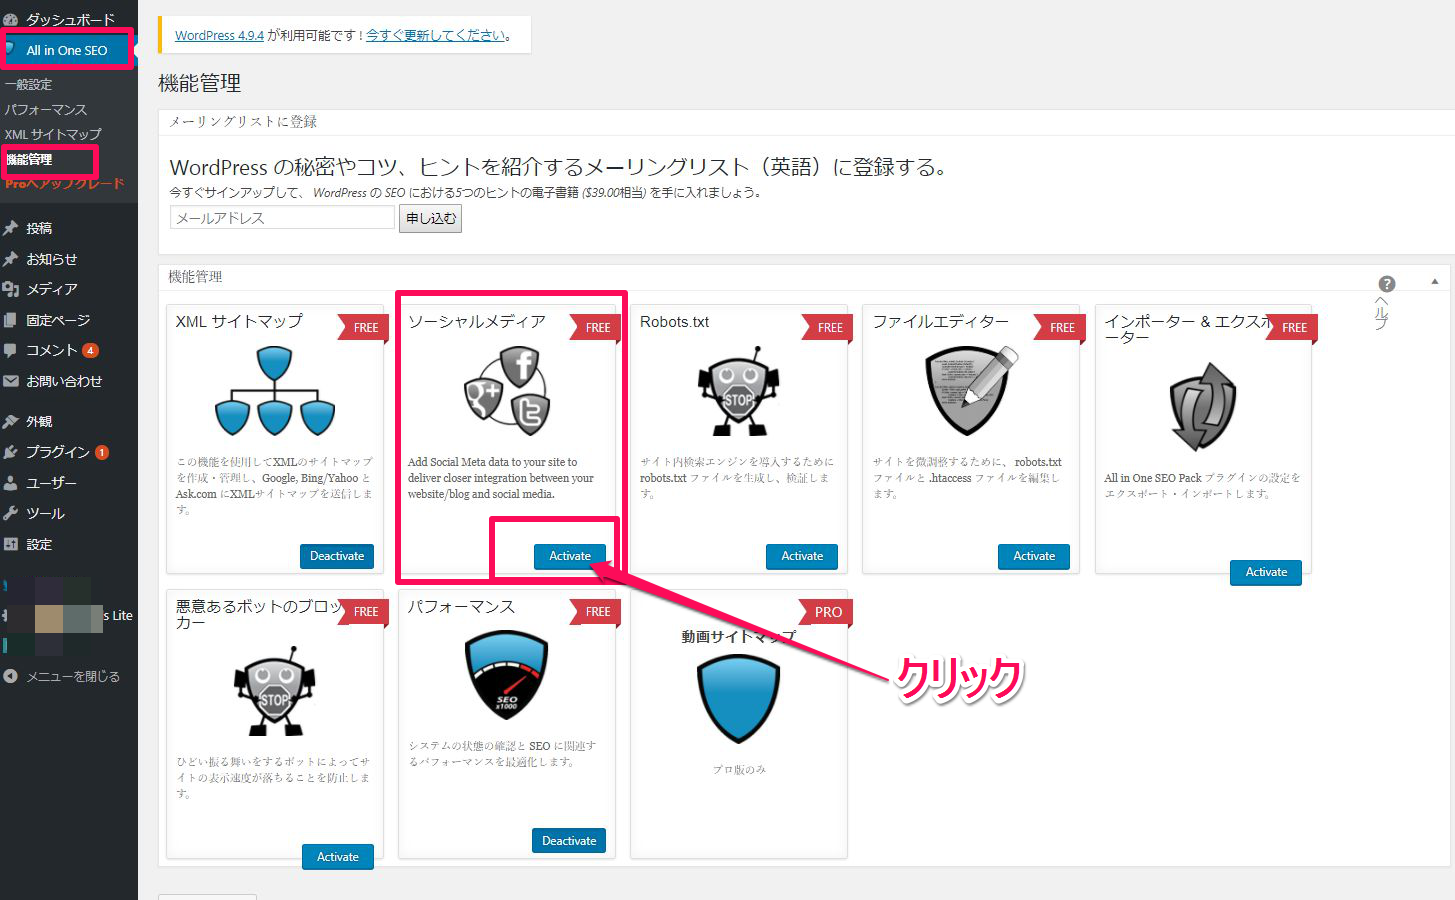 all in one seo packのソーシャルメディア(twitter,Facebook)の設定方法